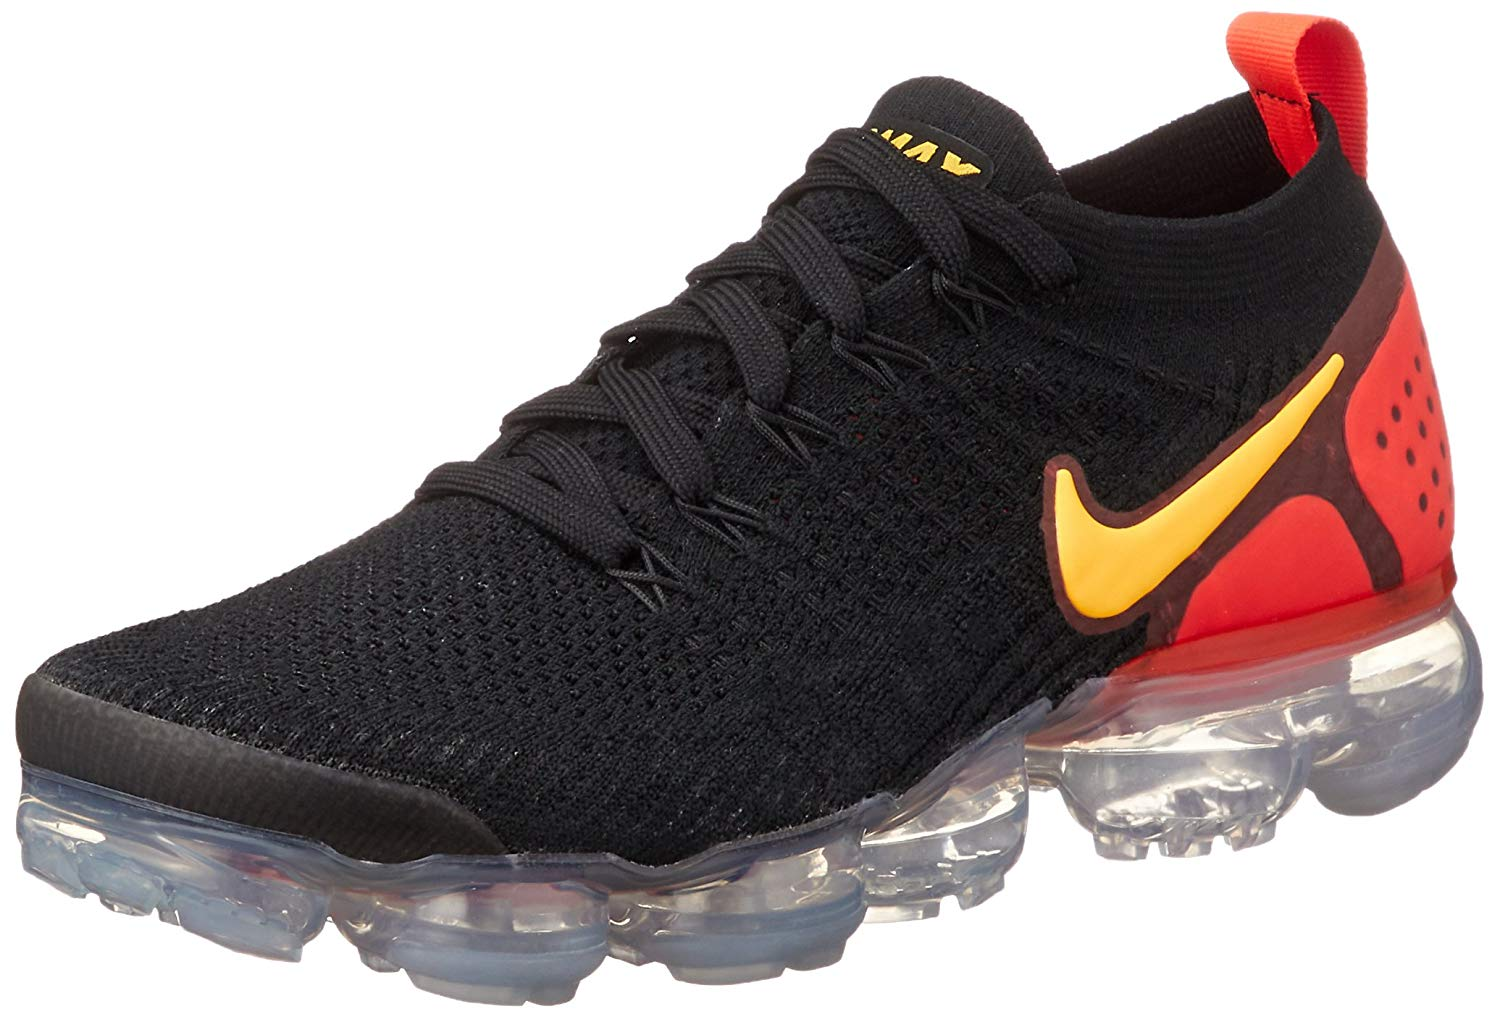 ... NIKE Air Vapormax Flyknit Shoes - THE SMALLSPIN 7ec08fd74